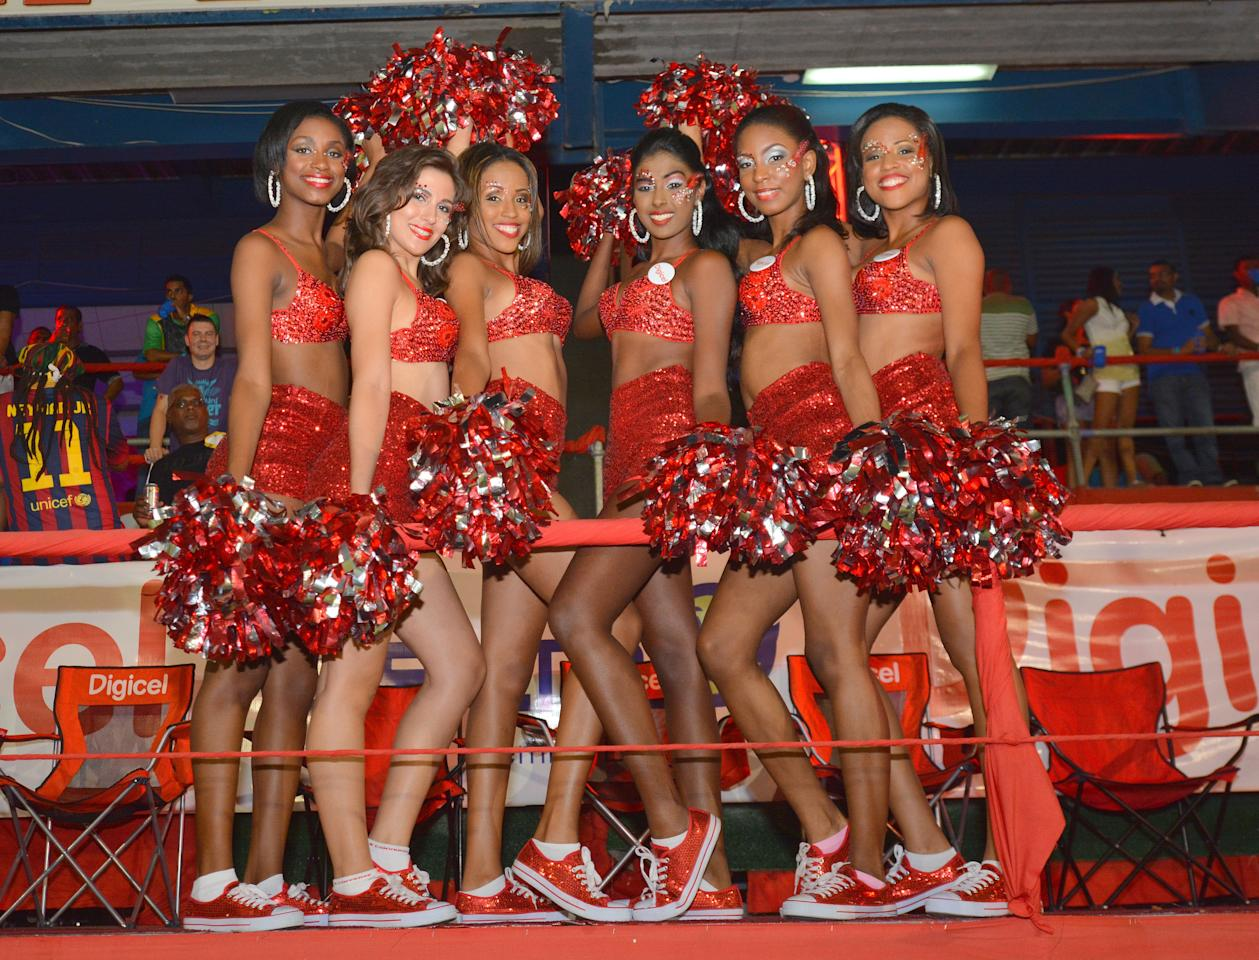 PORT OF SPAIN, TRINIDAD AND TOBAGO - AUGUST 24: Cheerleaders cheer their team during the Final of the Cricket Caribbean Premier League between Guyana Amazon Warriors v Jamaica Tallawahs at Queen's Park Oval on August 24, 2013 in Port of Spain, Trinidad and Tobago. (Photo by Lloyd Pierre/Getty Images Latin America for CPL)